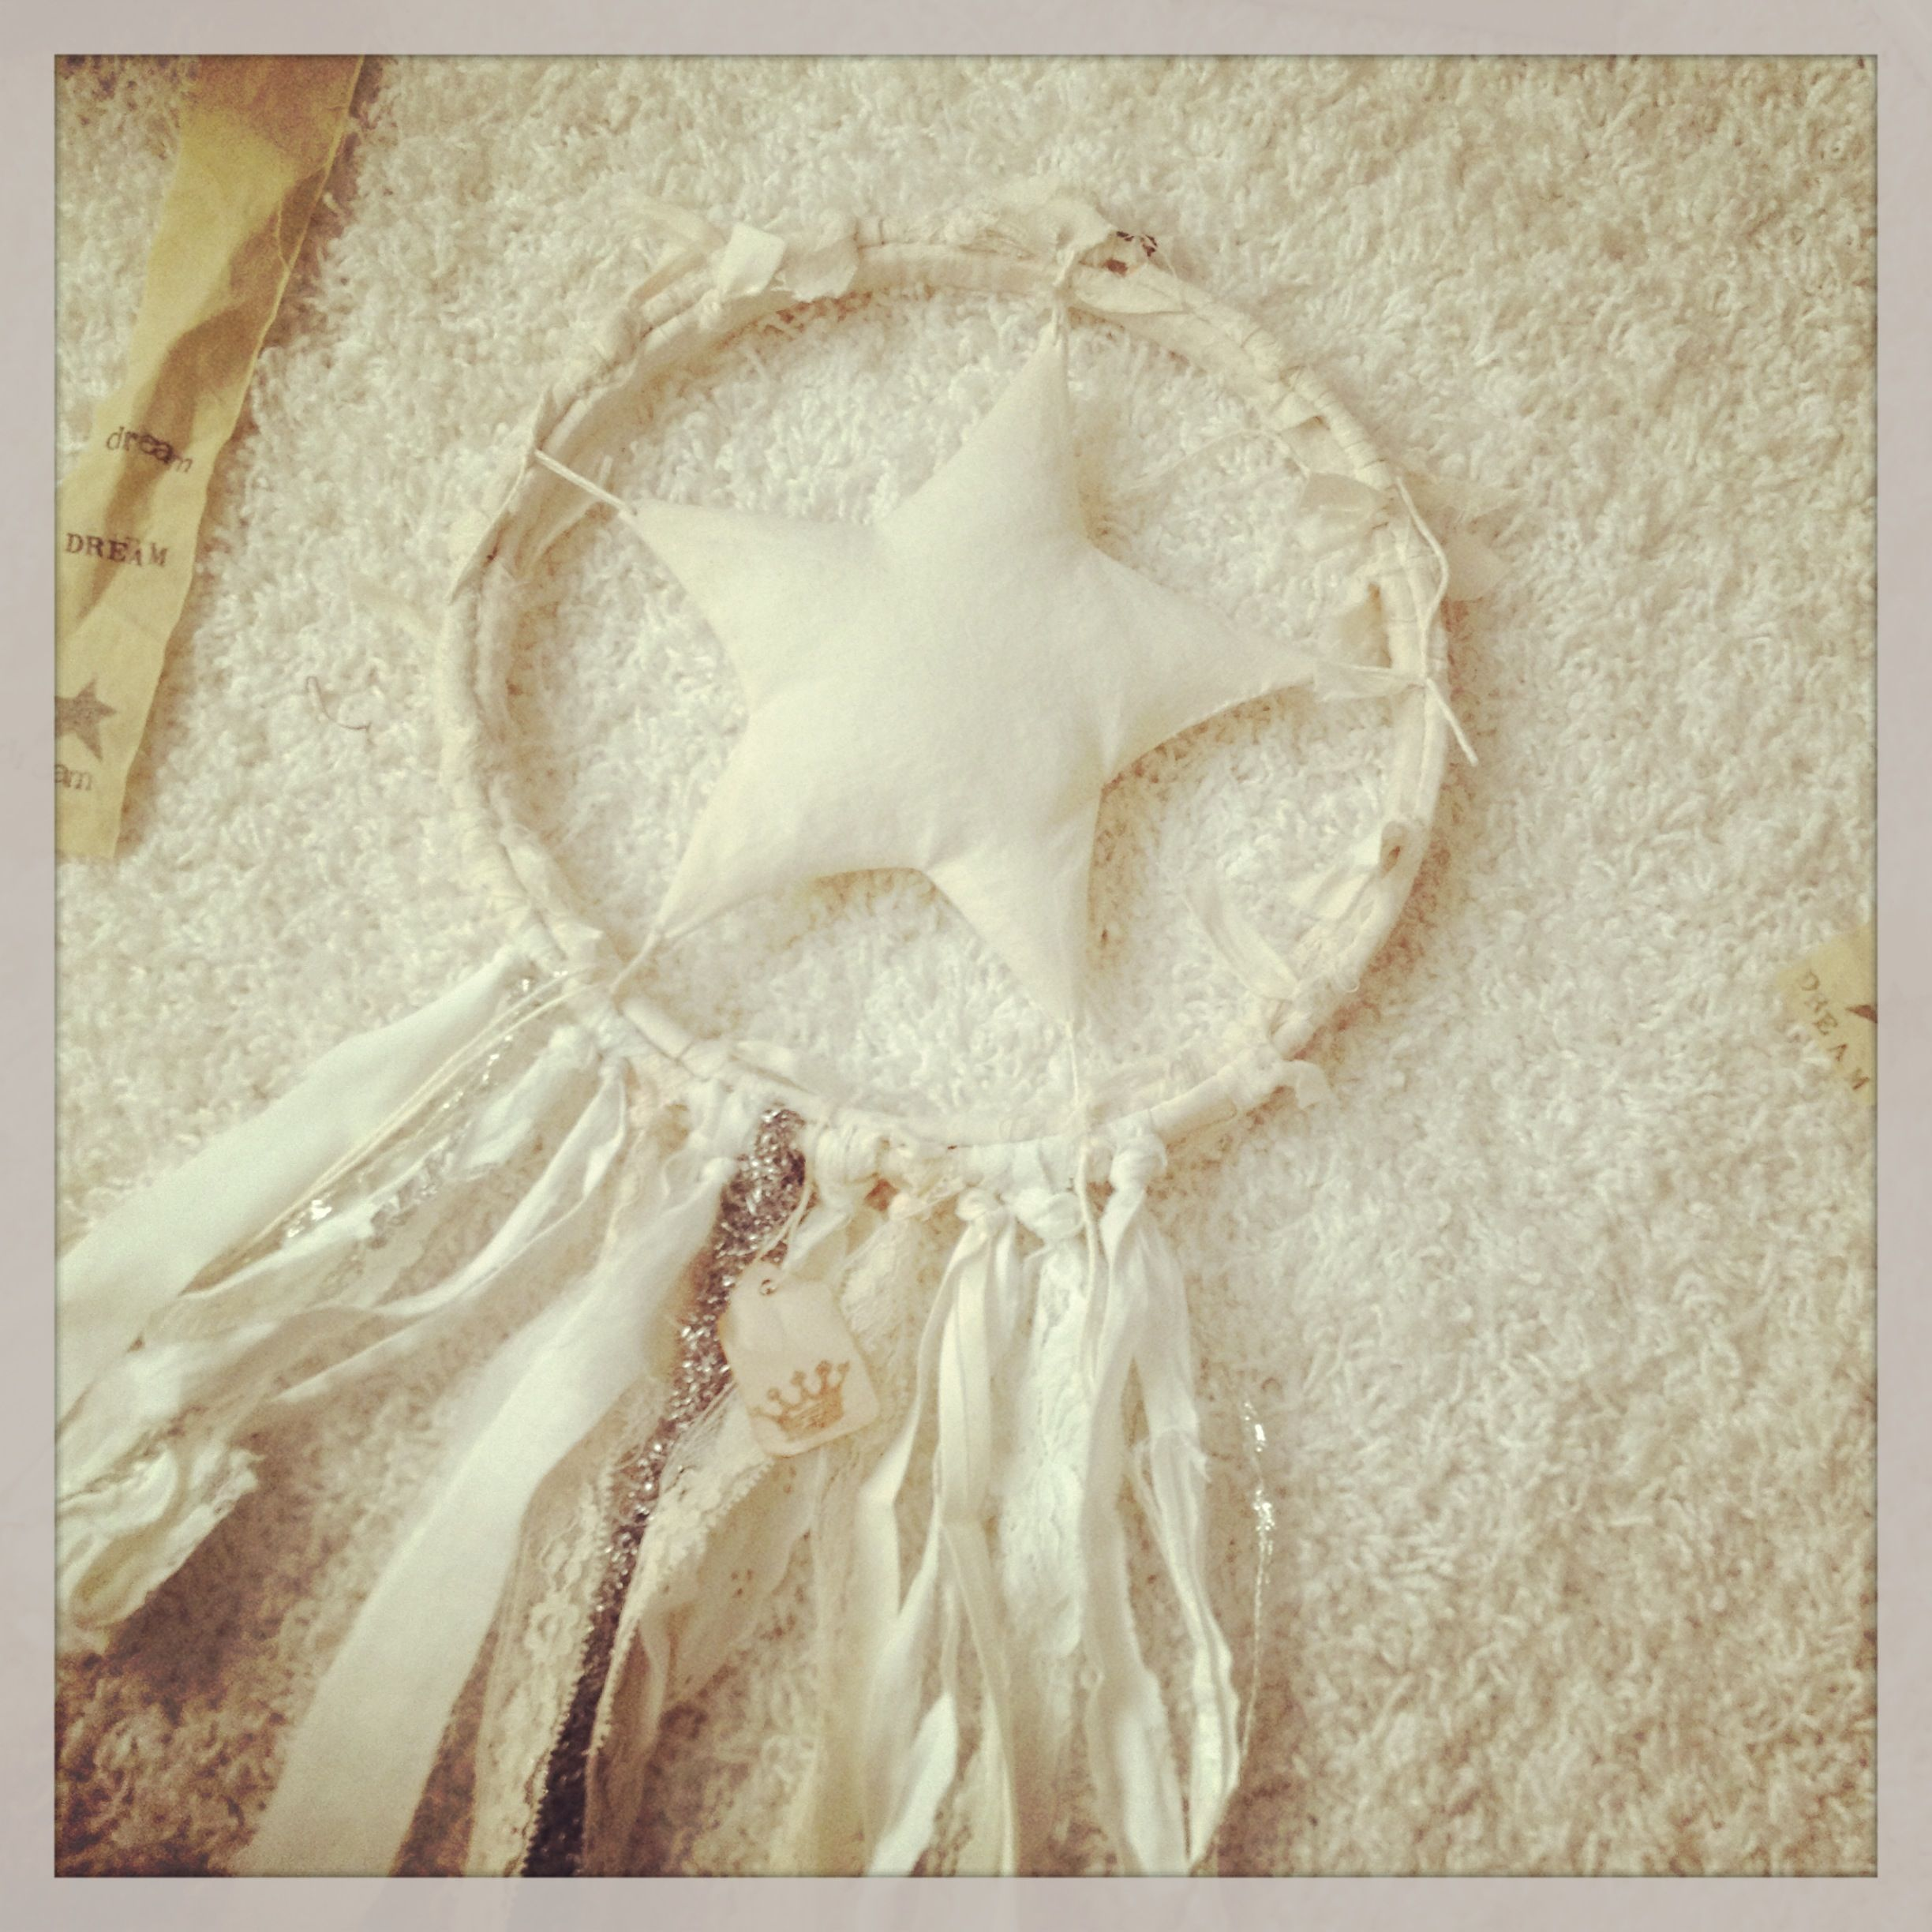 Bad Shabby Chic To Catch All The Bad Dreams A Shabby Chic Star Dream